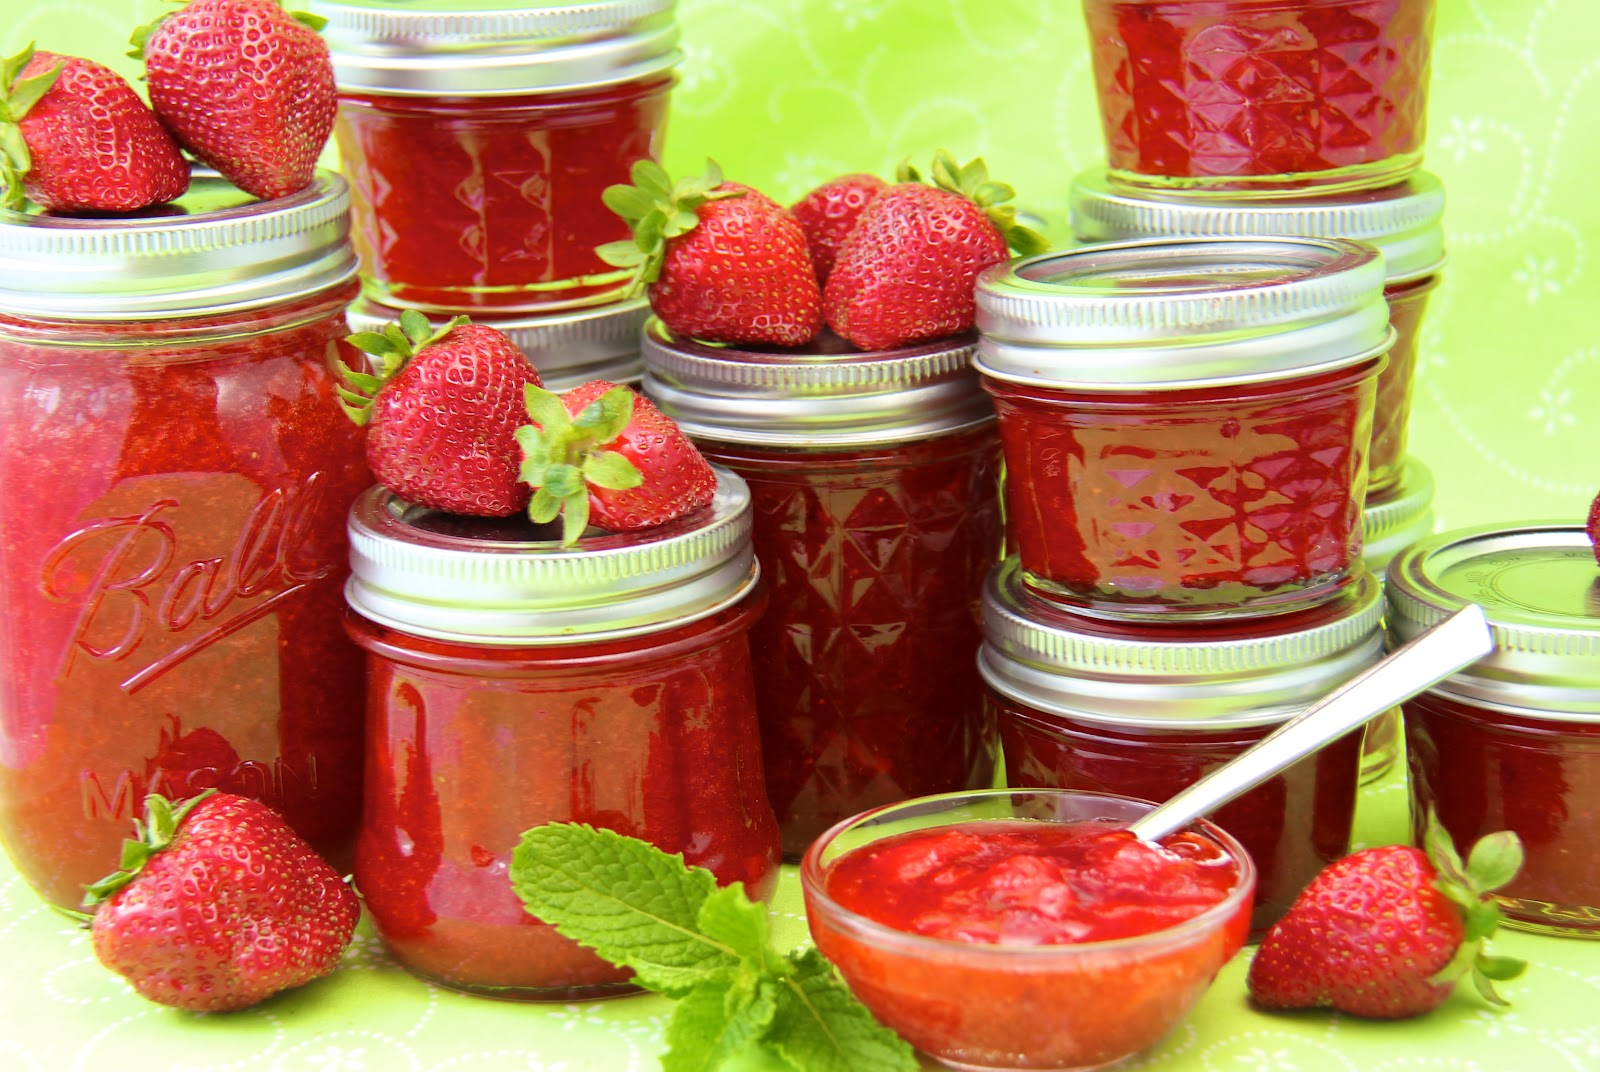 Strawberry freezer jam Jam without boiling easy made flavorful